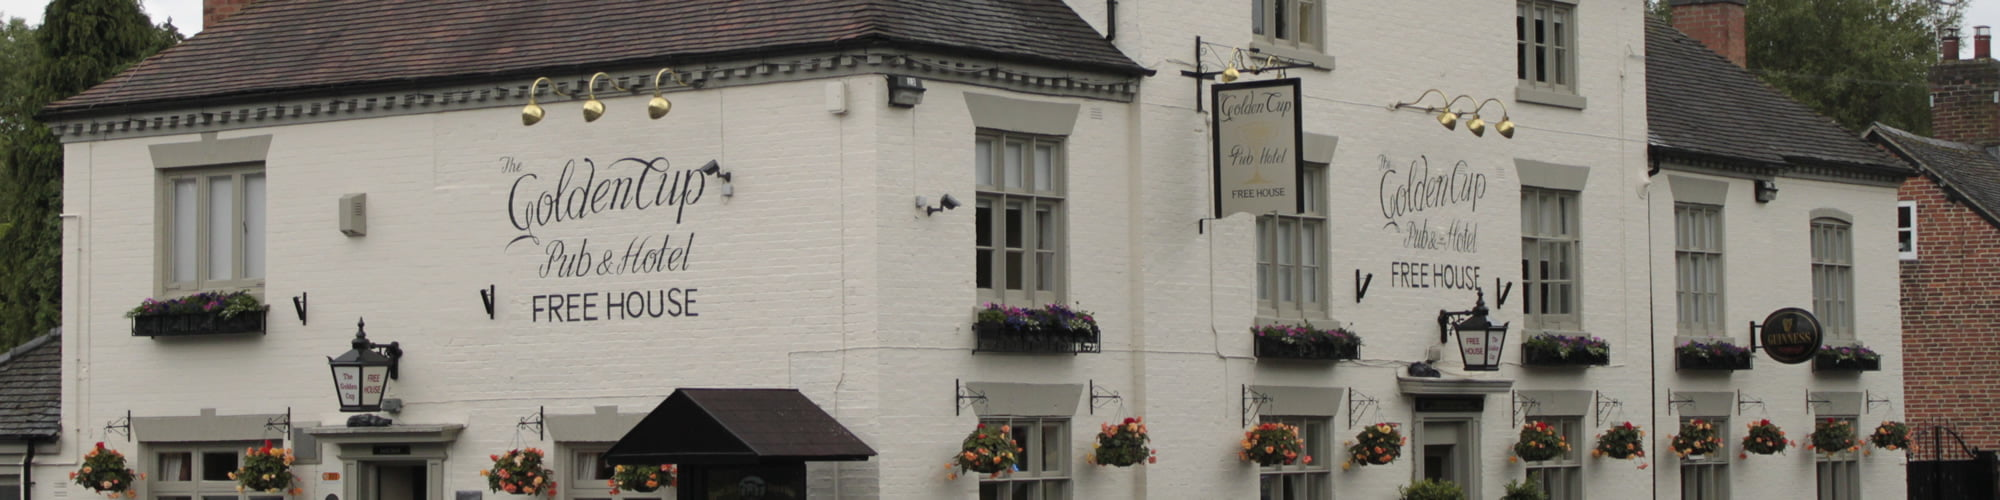 The Golden Cup Yoxall | Hotel  and Inn in the heart of Staffordshire  - Home Page Banner